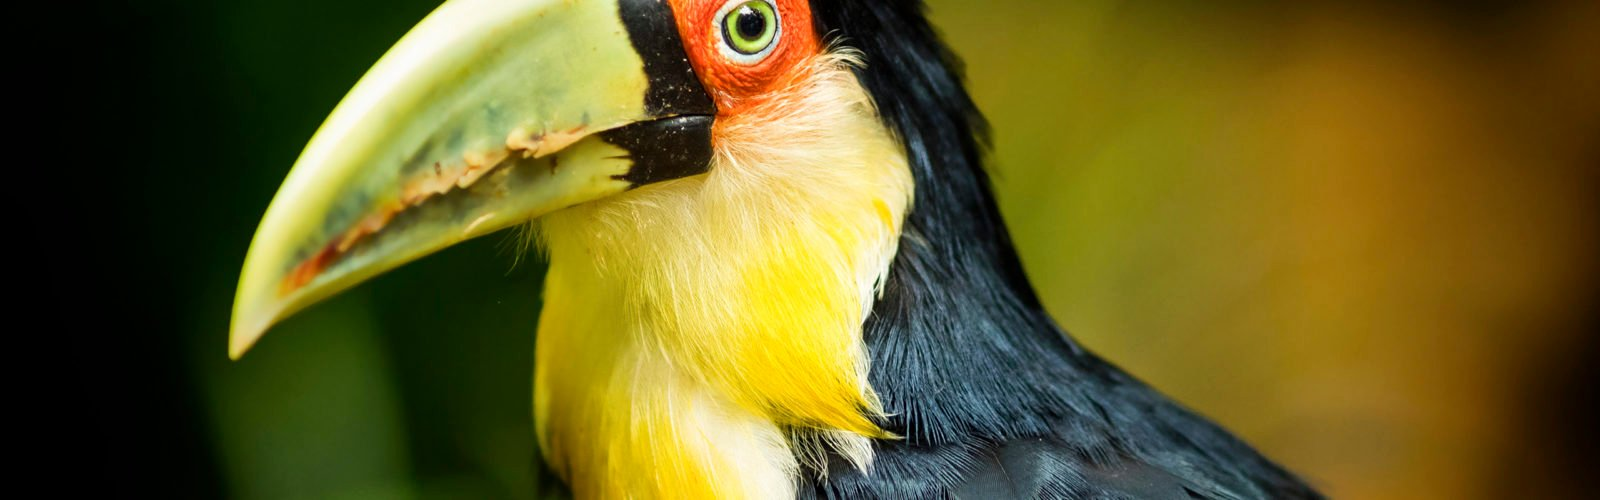 toucan-missiones-forest